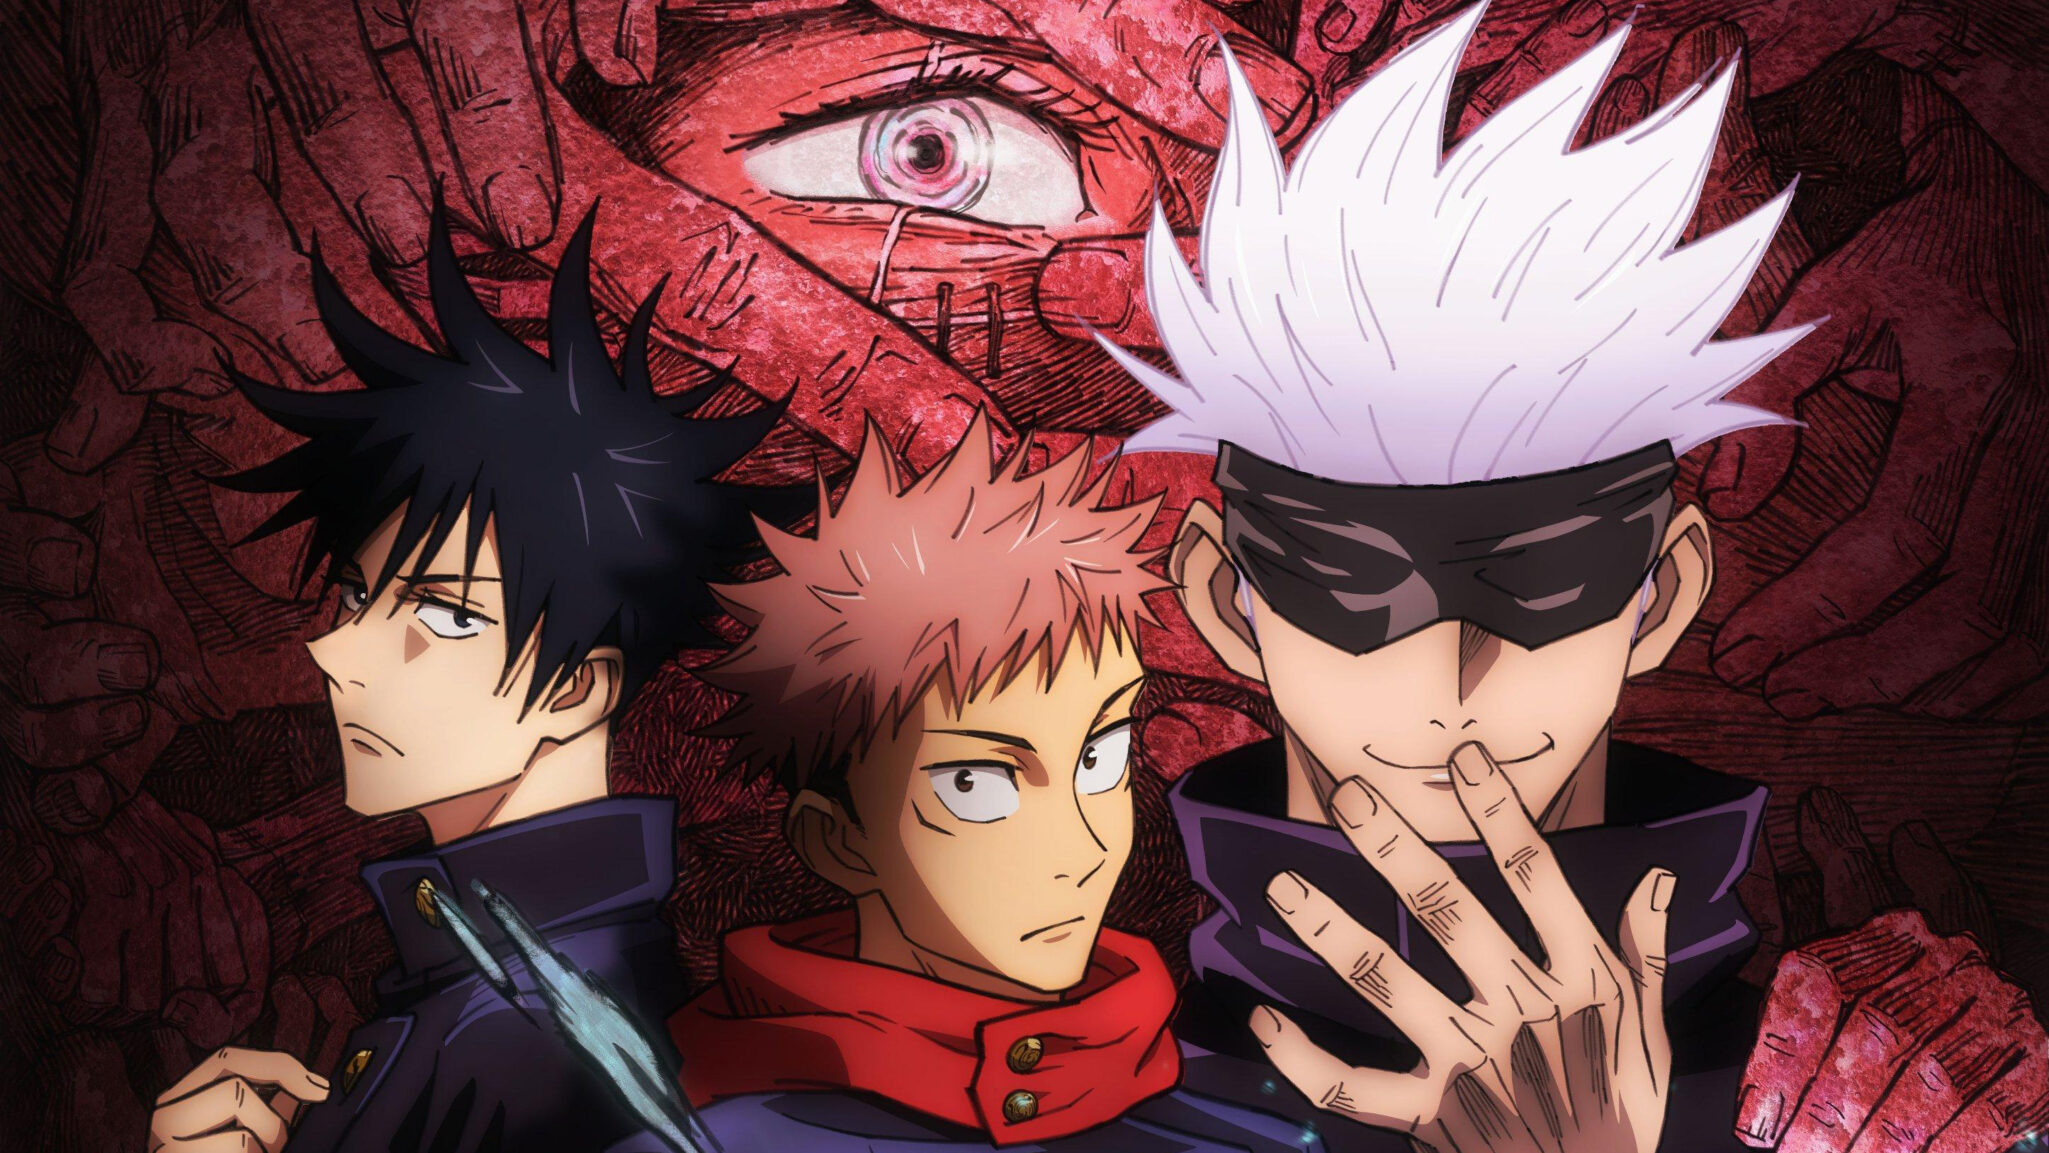 Best Anime of 2020 - Jujutsu Kaisen